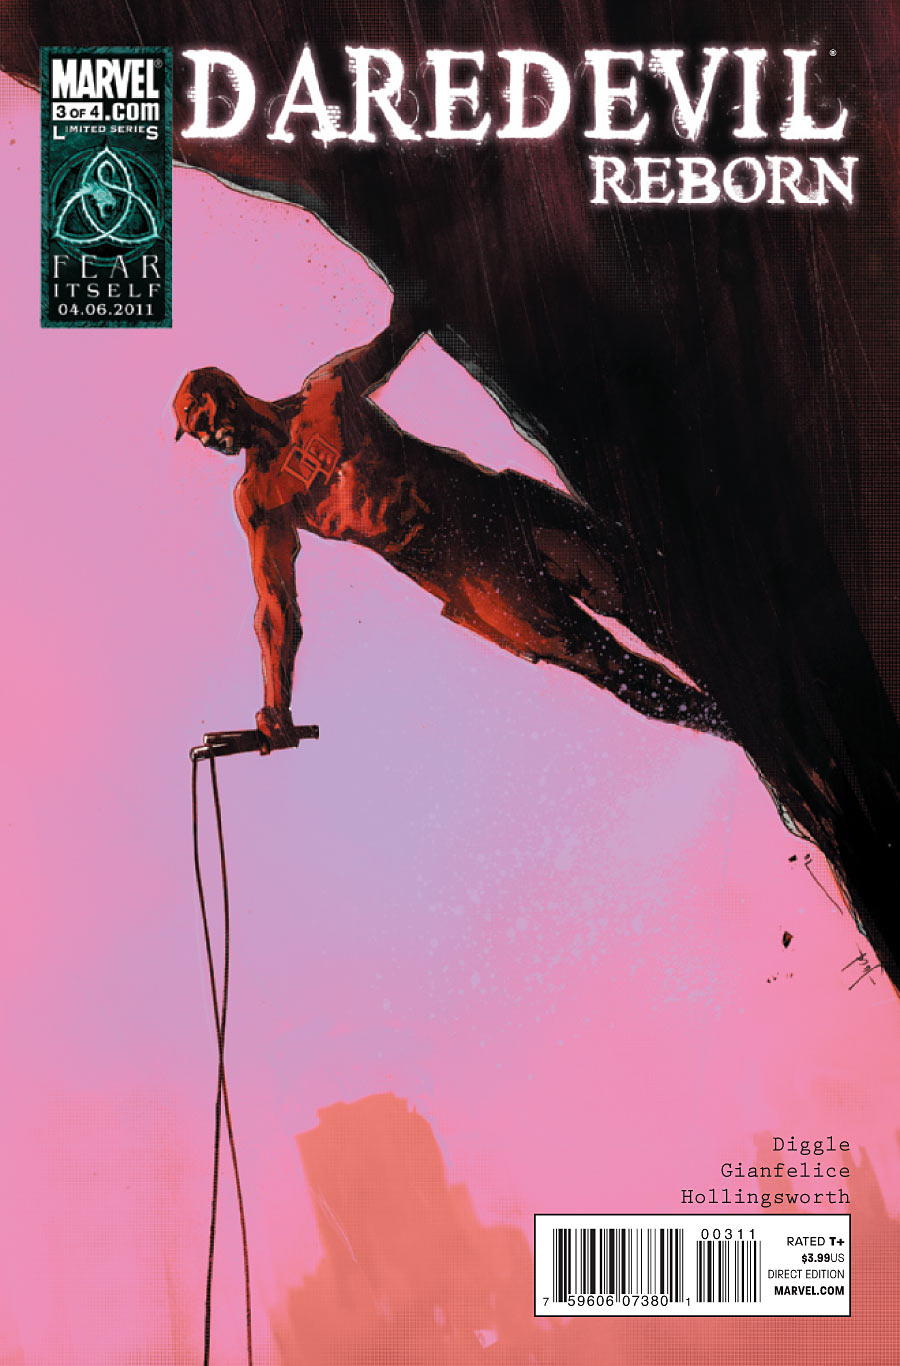 Daredevil Reborn #3 Cover